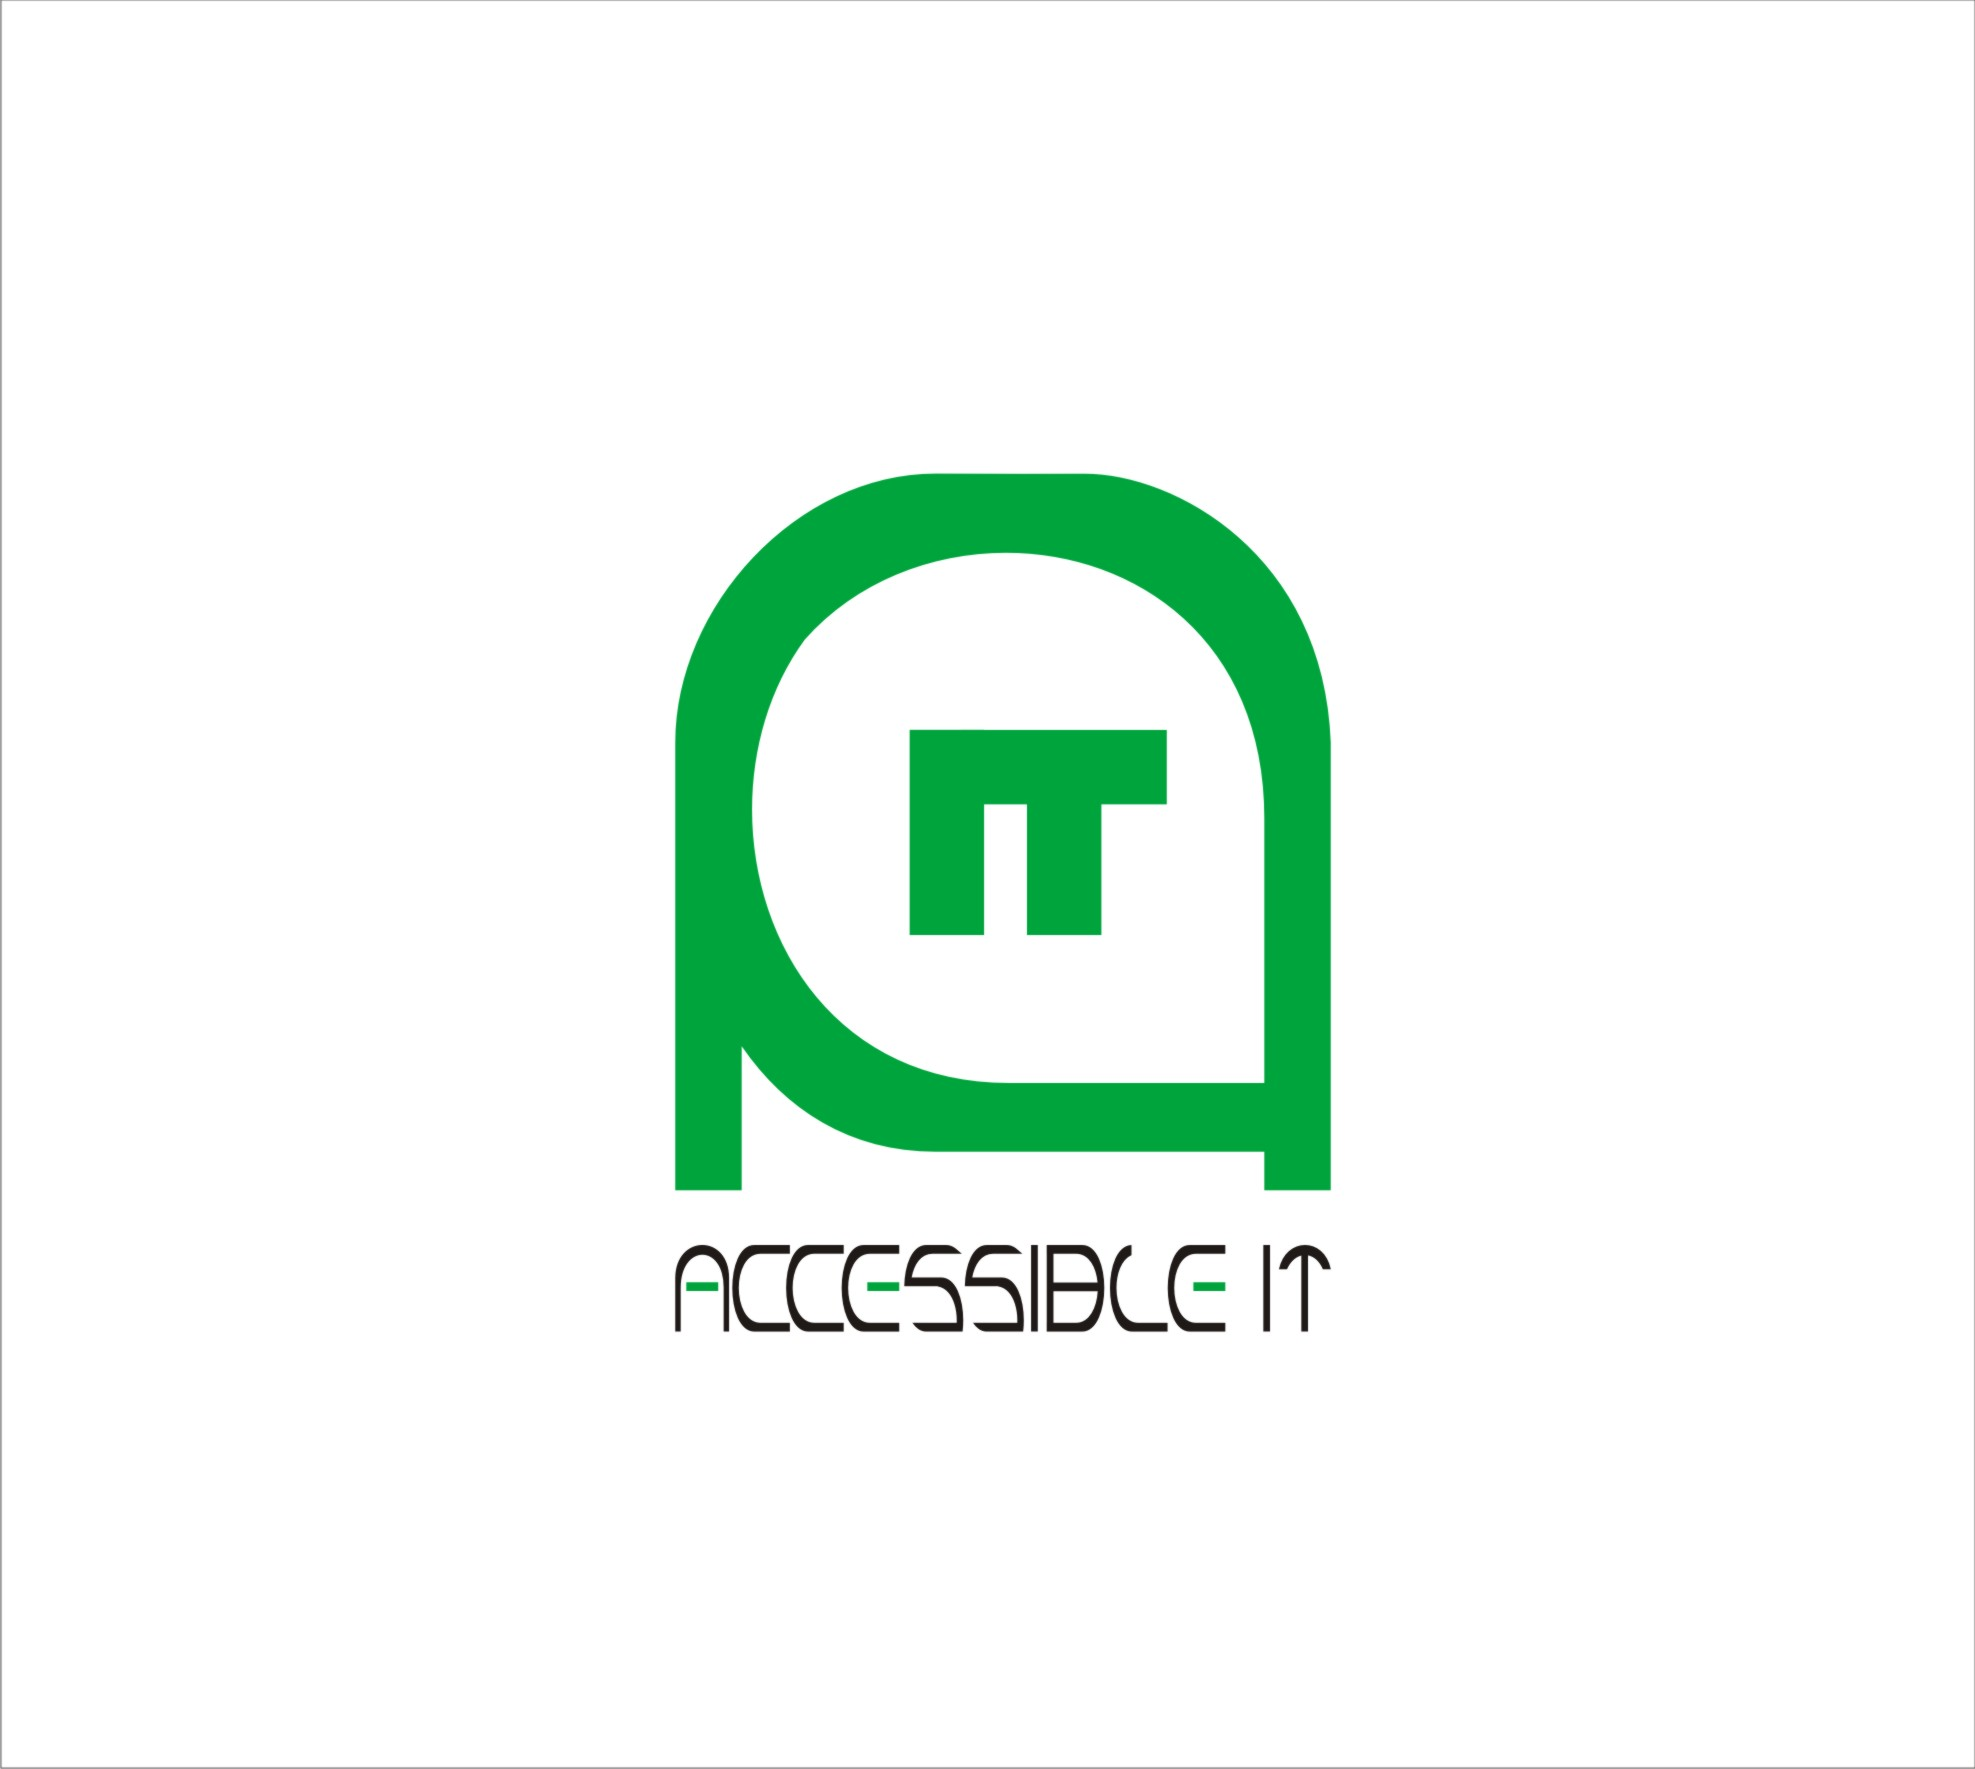 Logo Design by Aedz Danish - Entry No. 416 in the Logo Design Contest Logo Design Needed for Exciting New Company Accessible IT.